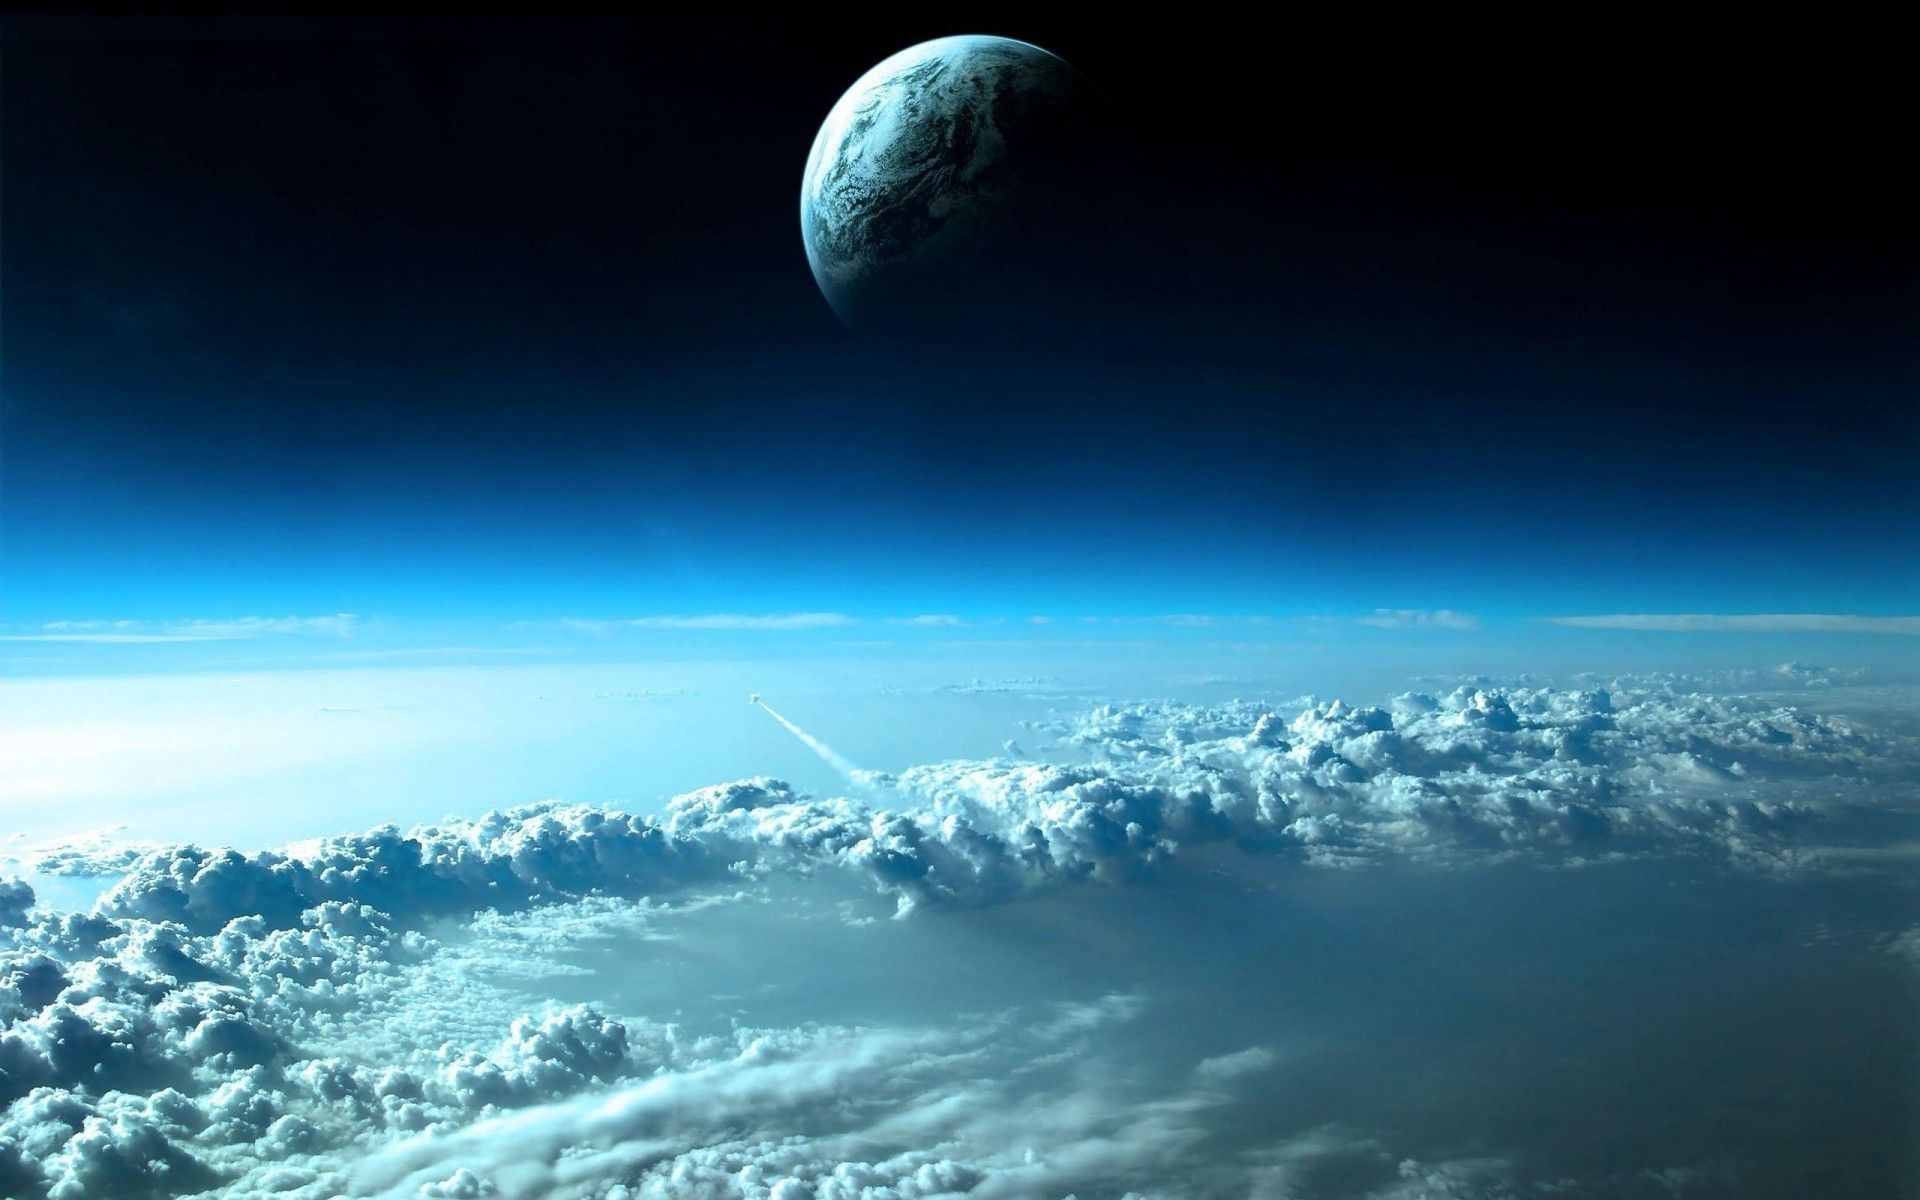 50 best free 8k uhd space wallpapers - wallpaperaccess